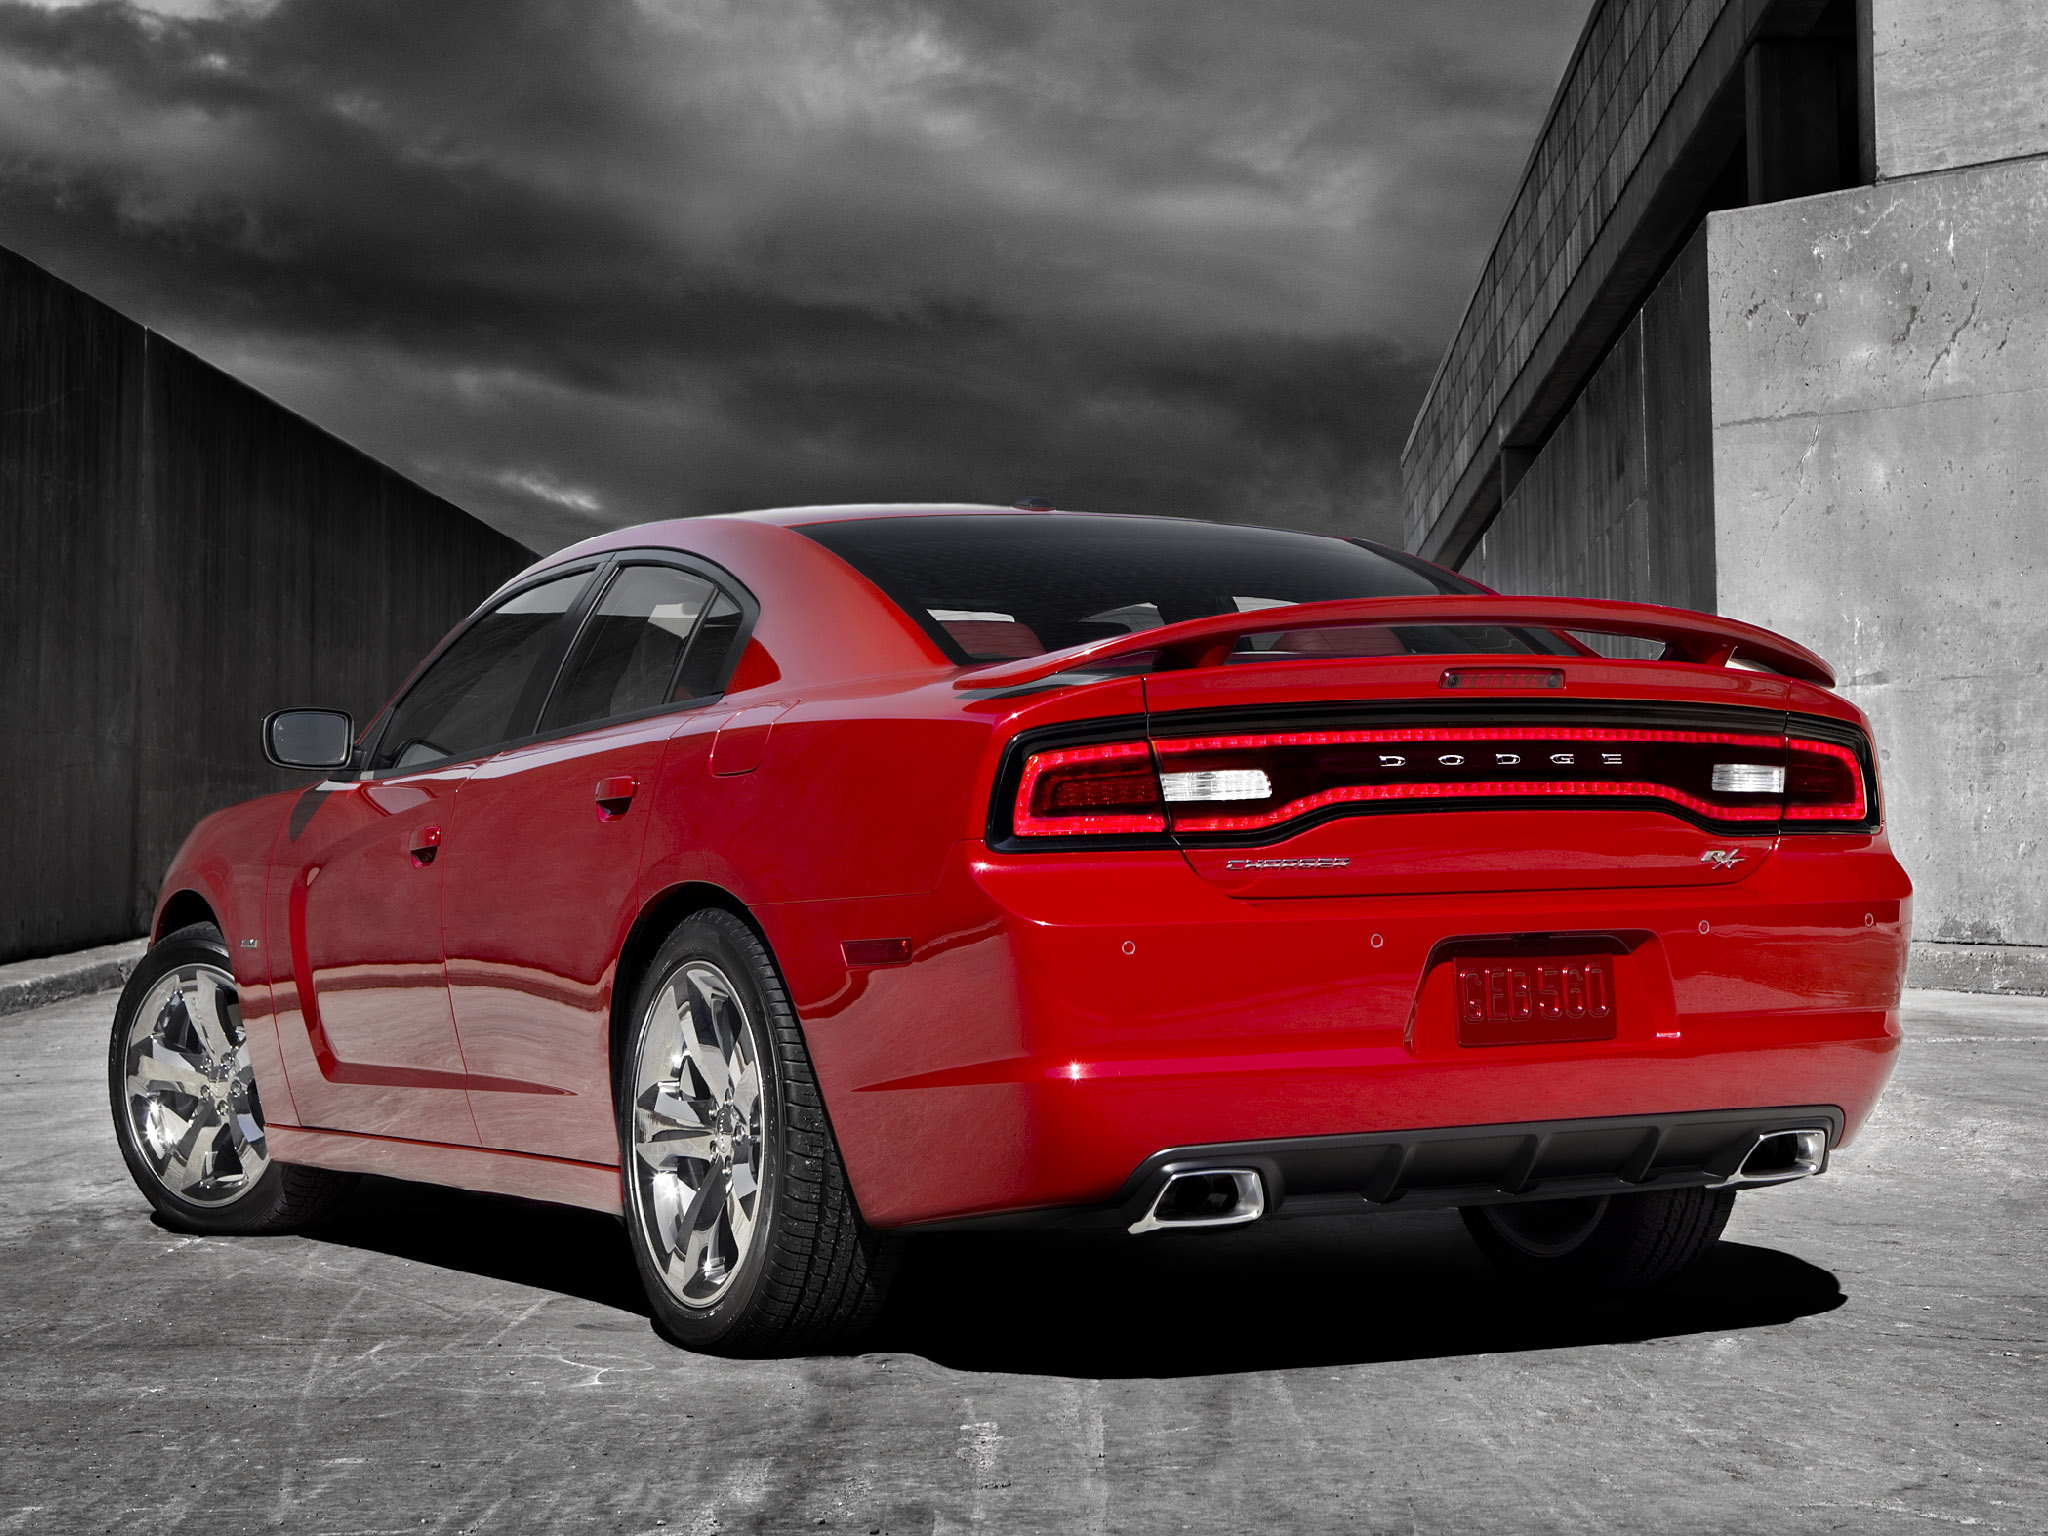 dodge charger rt 2010 dodge charger rt 2010 photo 01 car in pictures car photo gallery. Black Bedroom Furniture Sets. Home Design Ideas